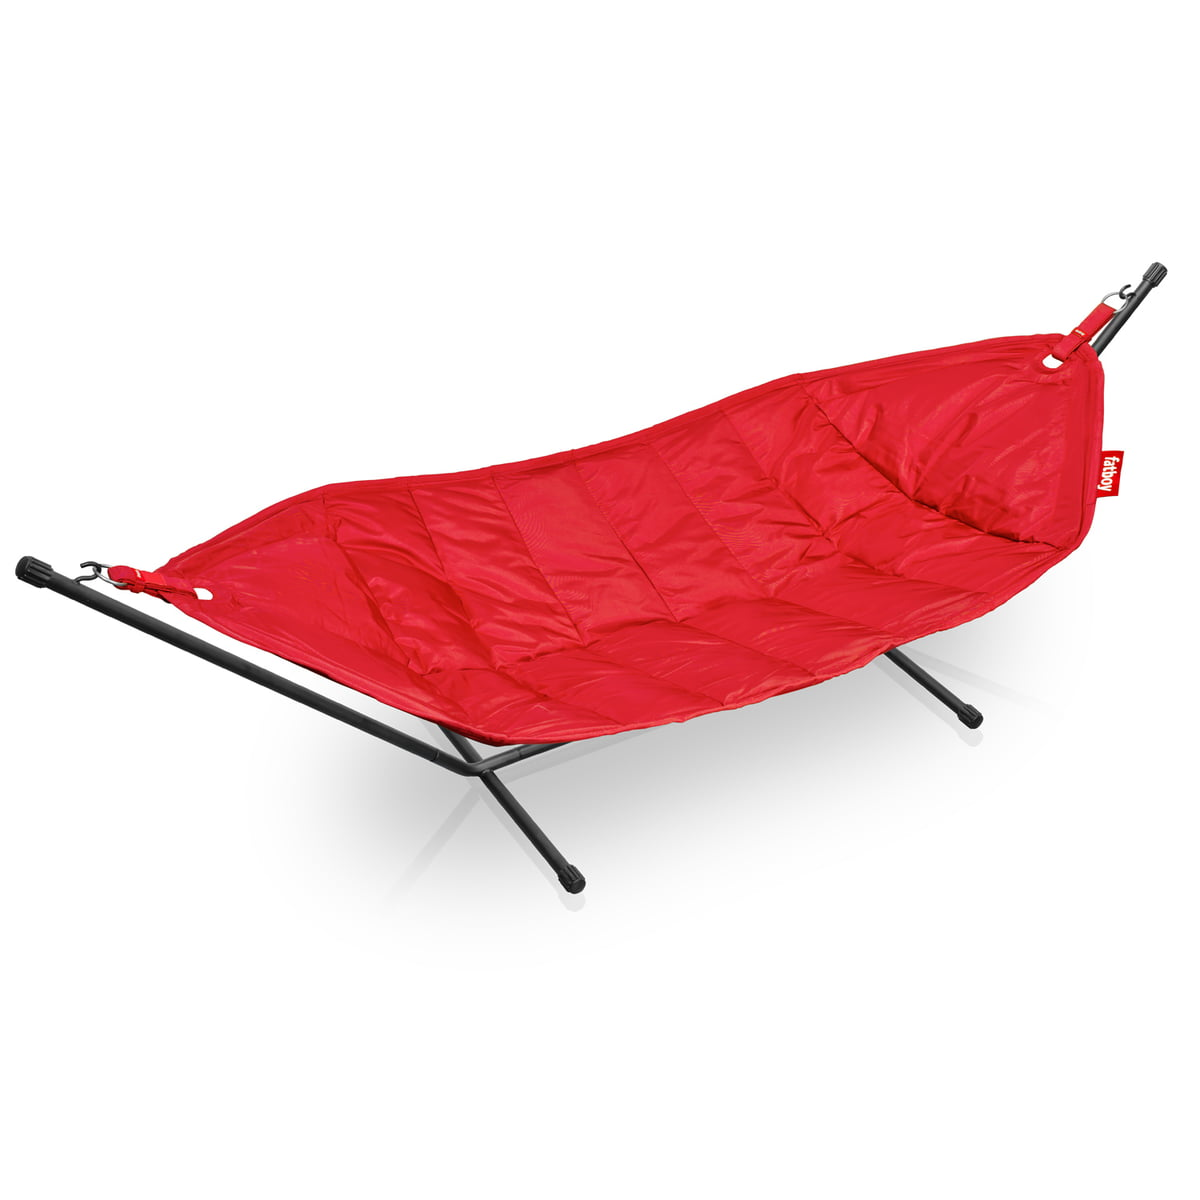 where london stands can here slideshow a buy uk hung hammocks hammock i well shop specialist